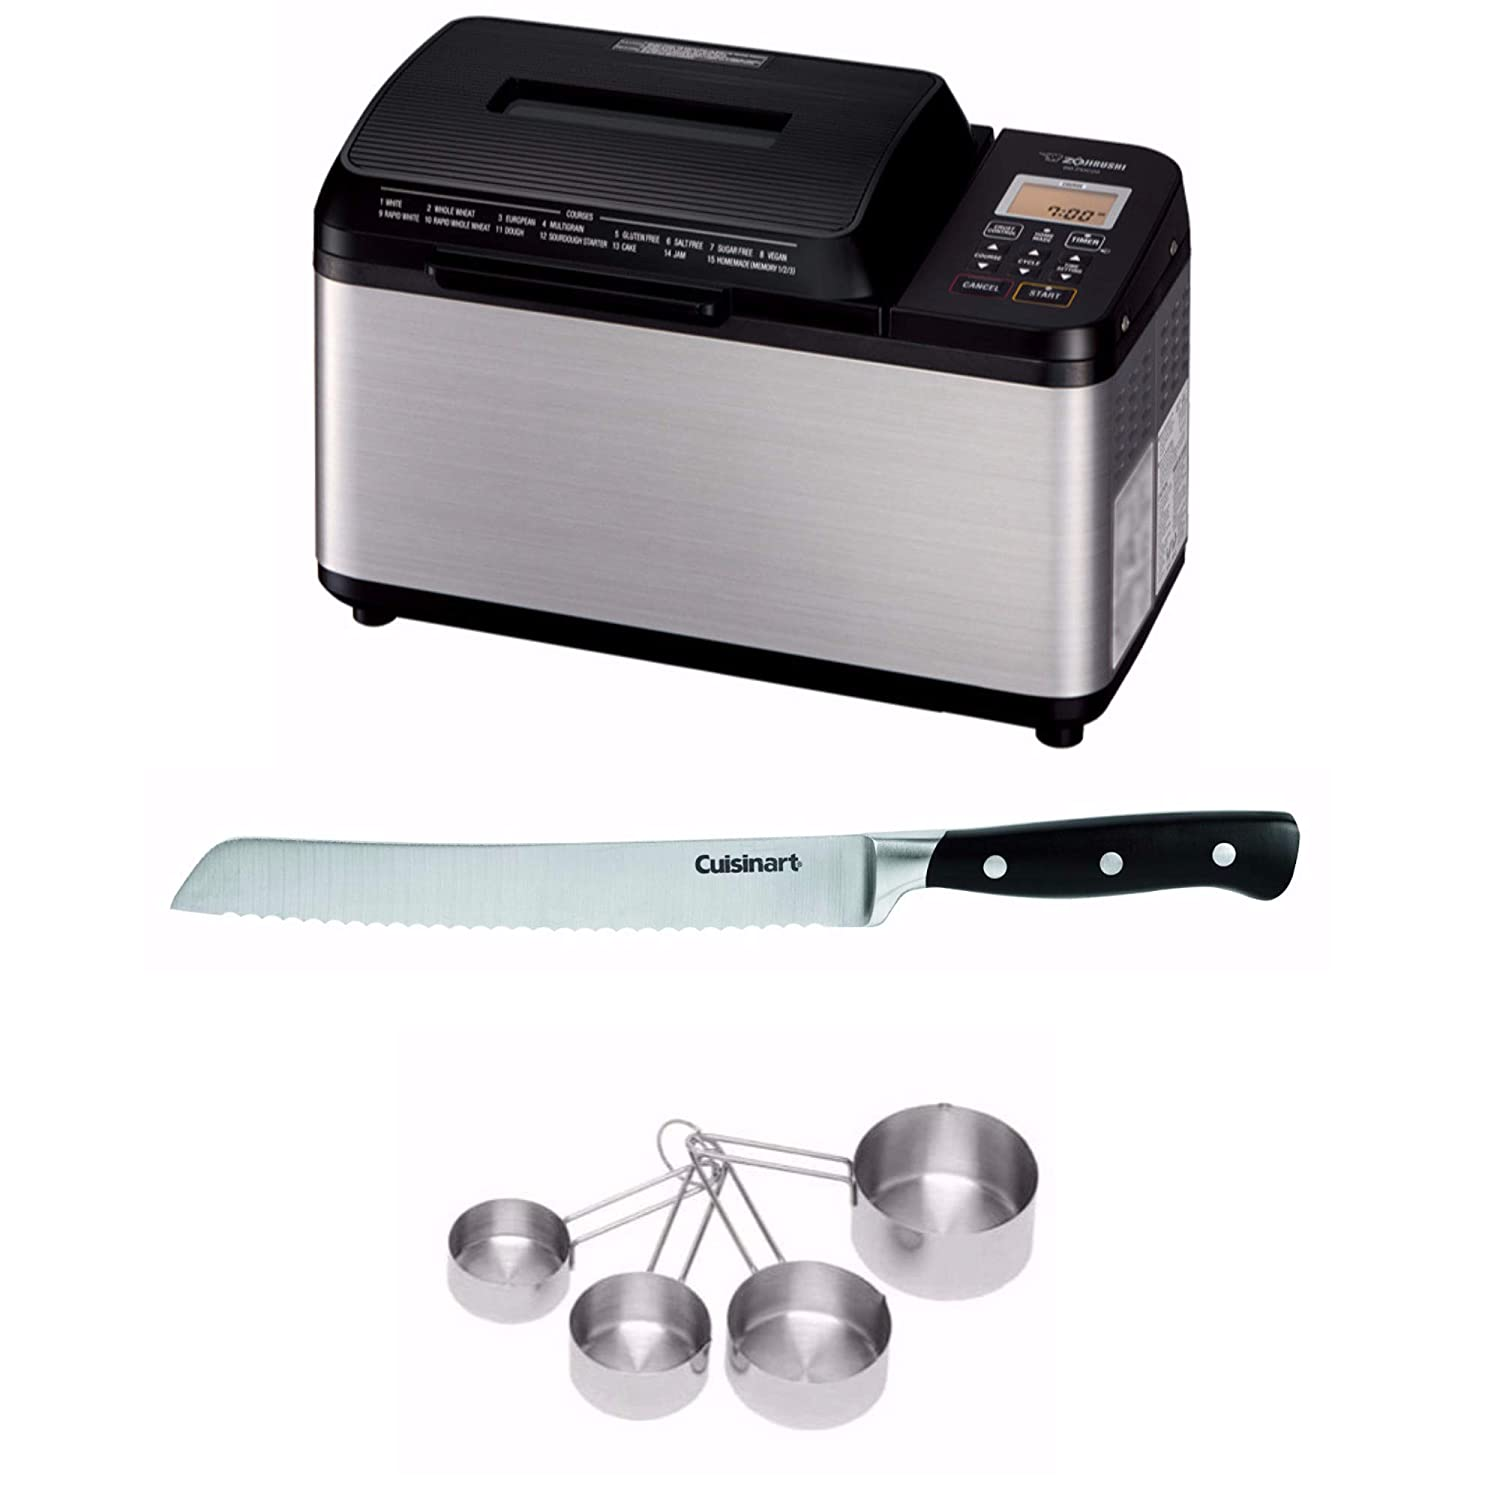 "Zojirushi BB-PDC20BA Home Bakery Virtuoso Plus Breadmaker, 2 lb. loaf of bread, Stainless Steel/Black Includes 8"" Bread Knife with Blade Guard, 4 Piece Stainless Steel Measuring Cup Set and Bread Book"